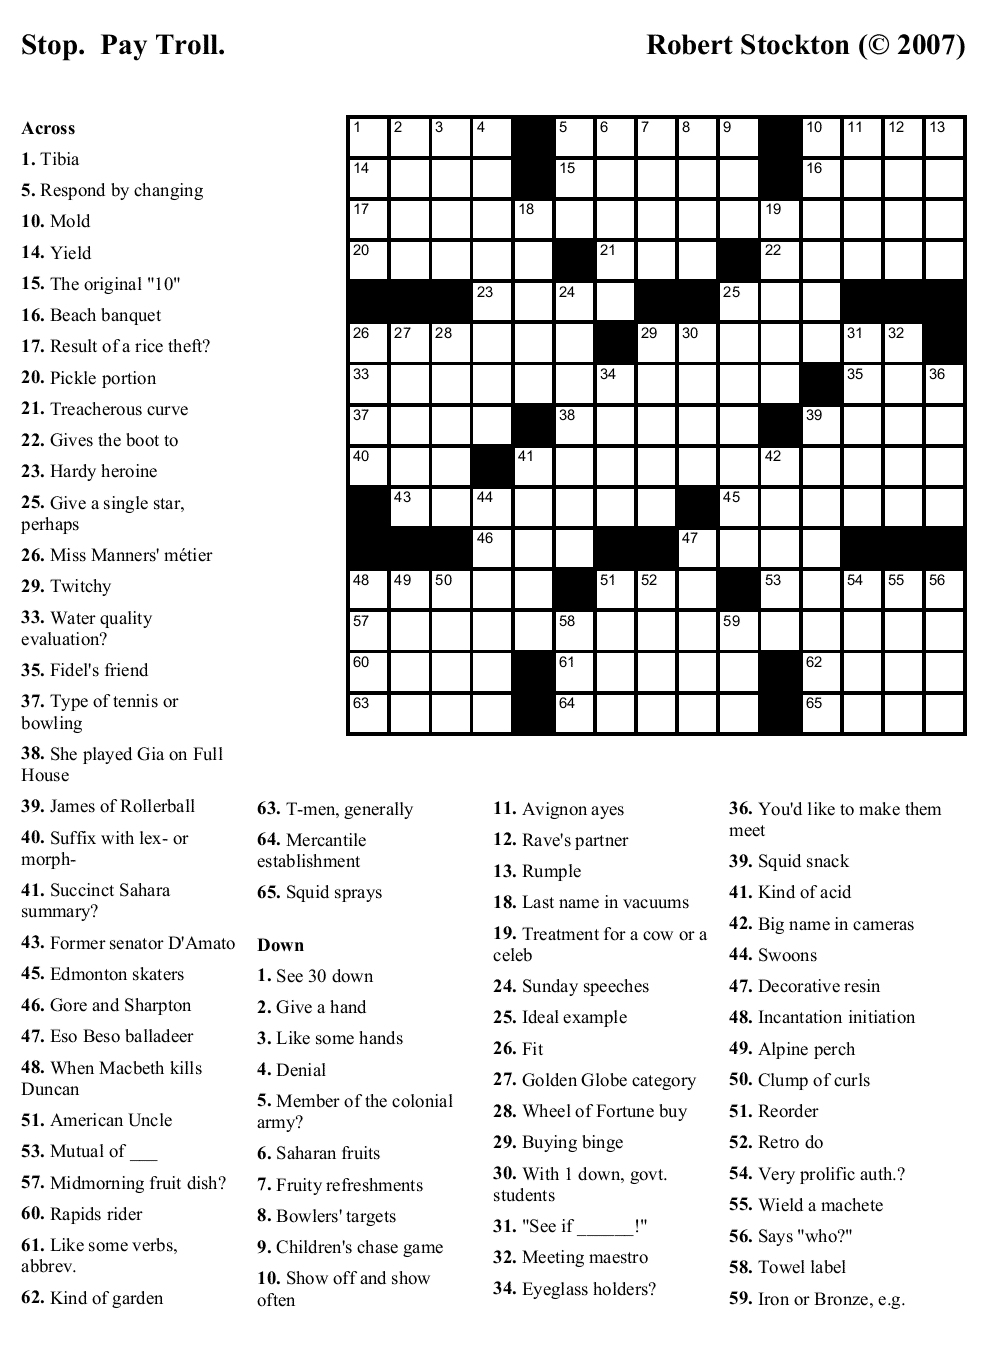 Printable Newspaper Crossword Puzzles For Free Nea Crosswords - Printable Nea Crossword Puzzle